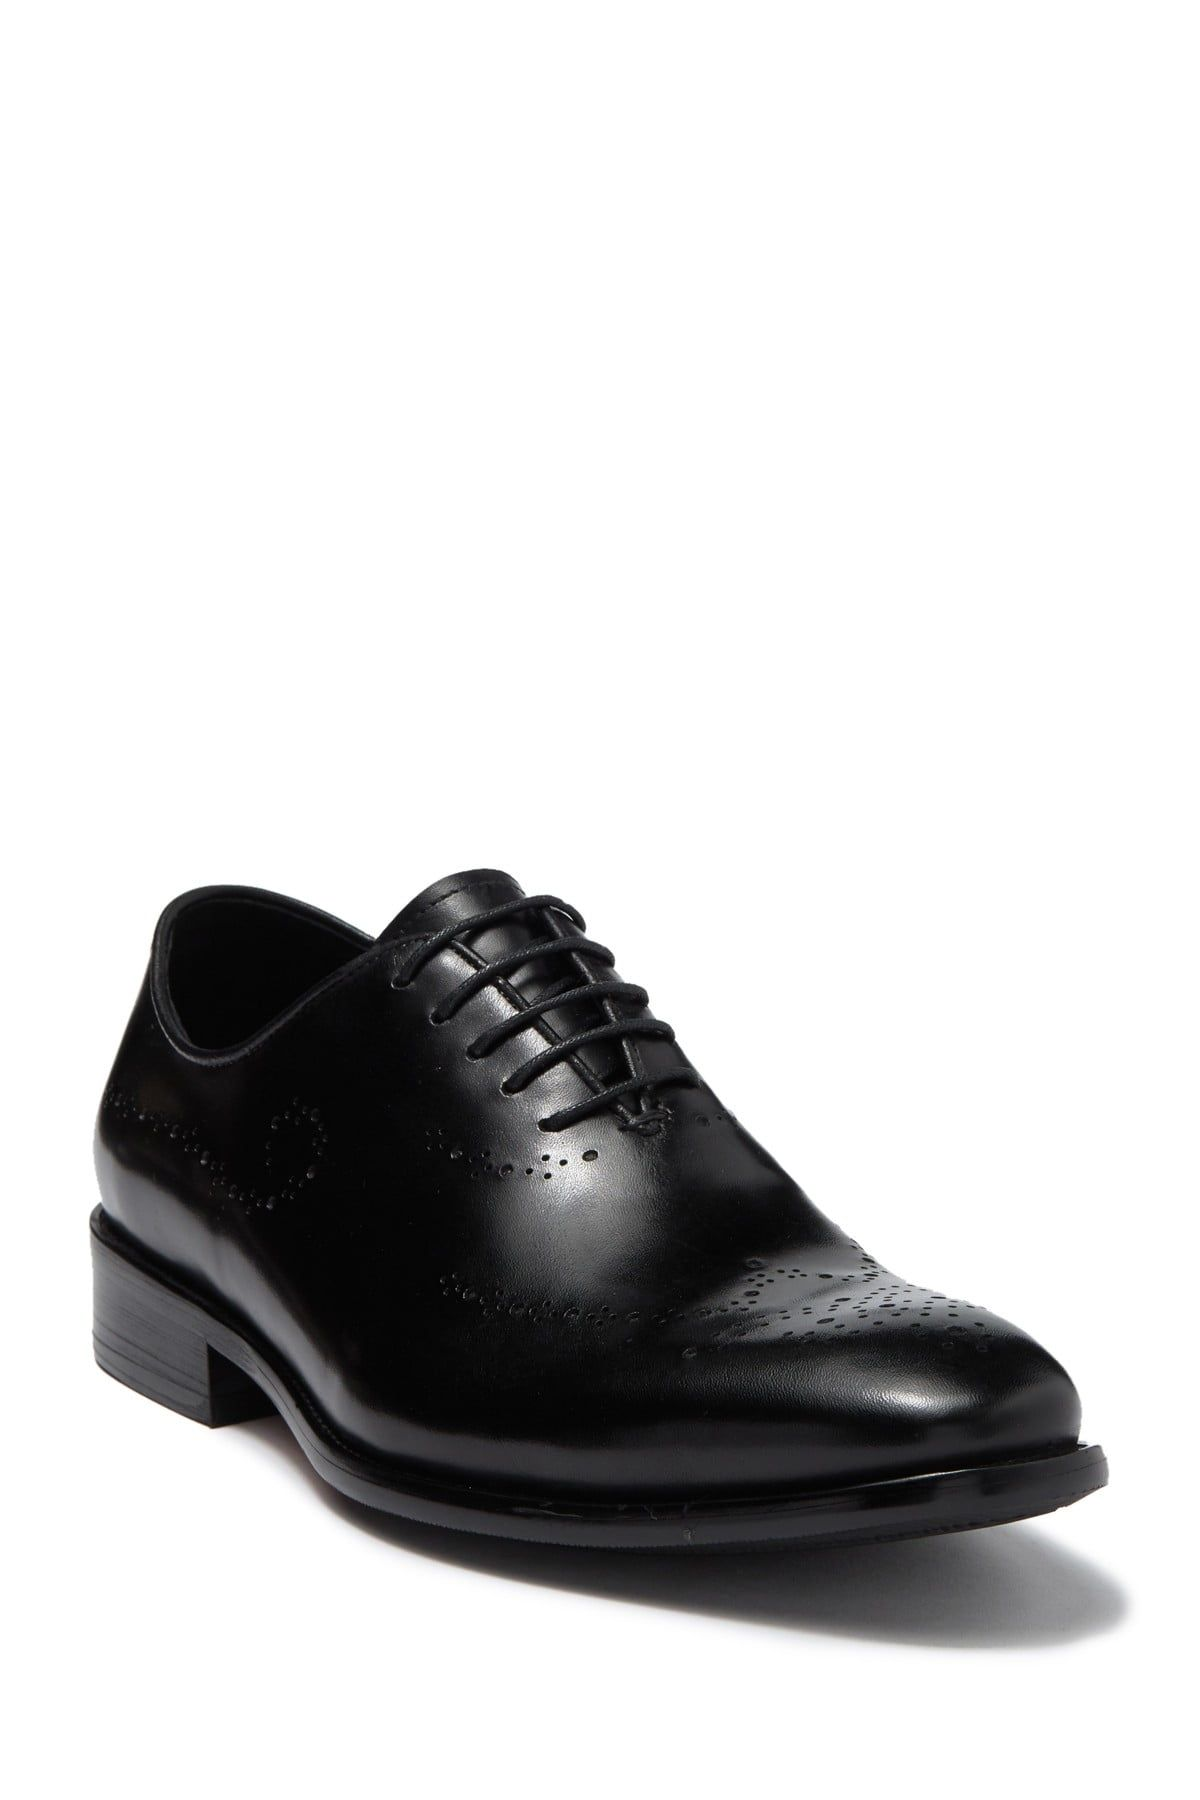 Maison Forte Gazi Wholecut Leather Oxford Nordstrom Rack In 2021 Leather Oxfords Dress Shoes Men Leather [ 1800 x 1200 Pixel ]